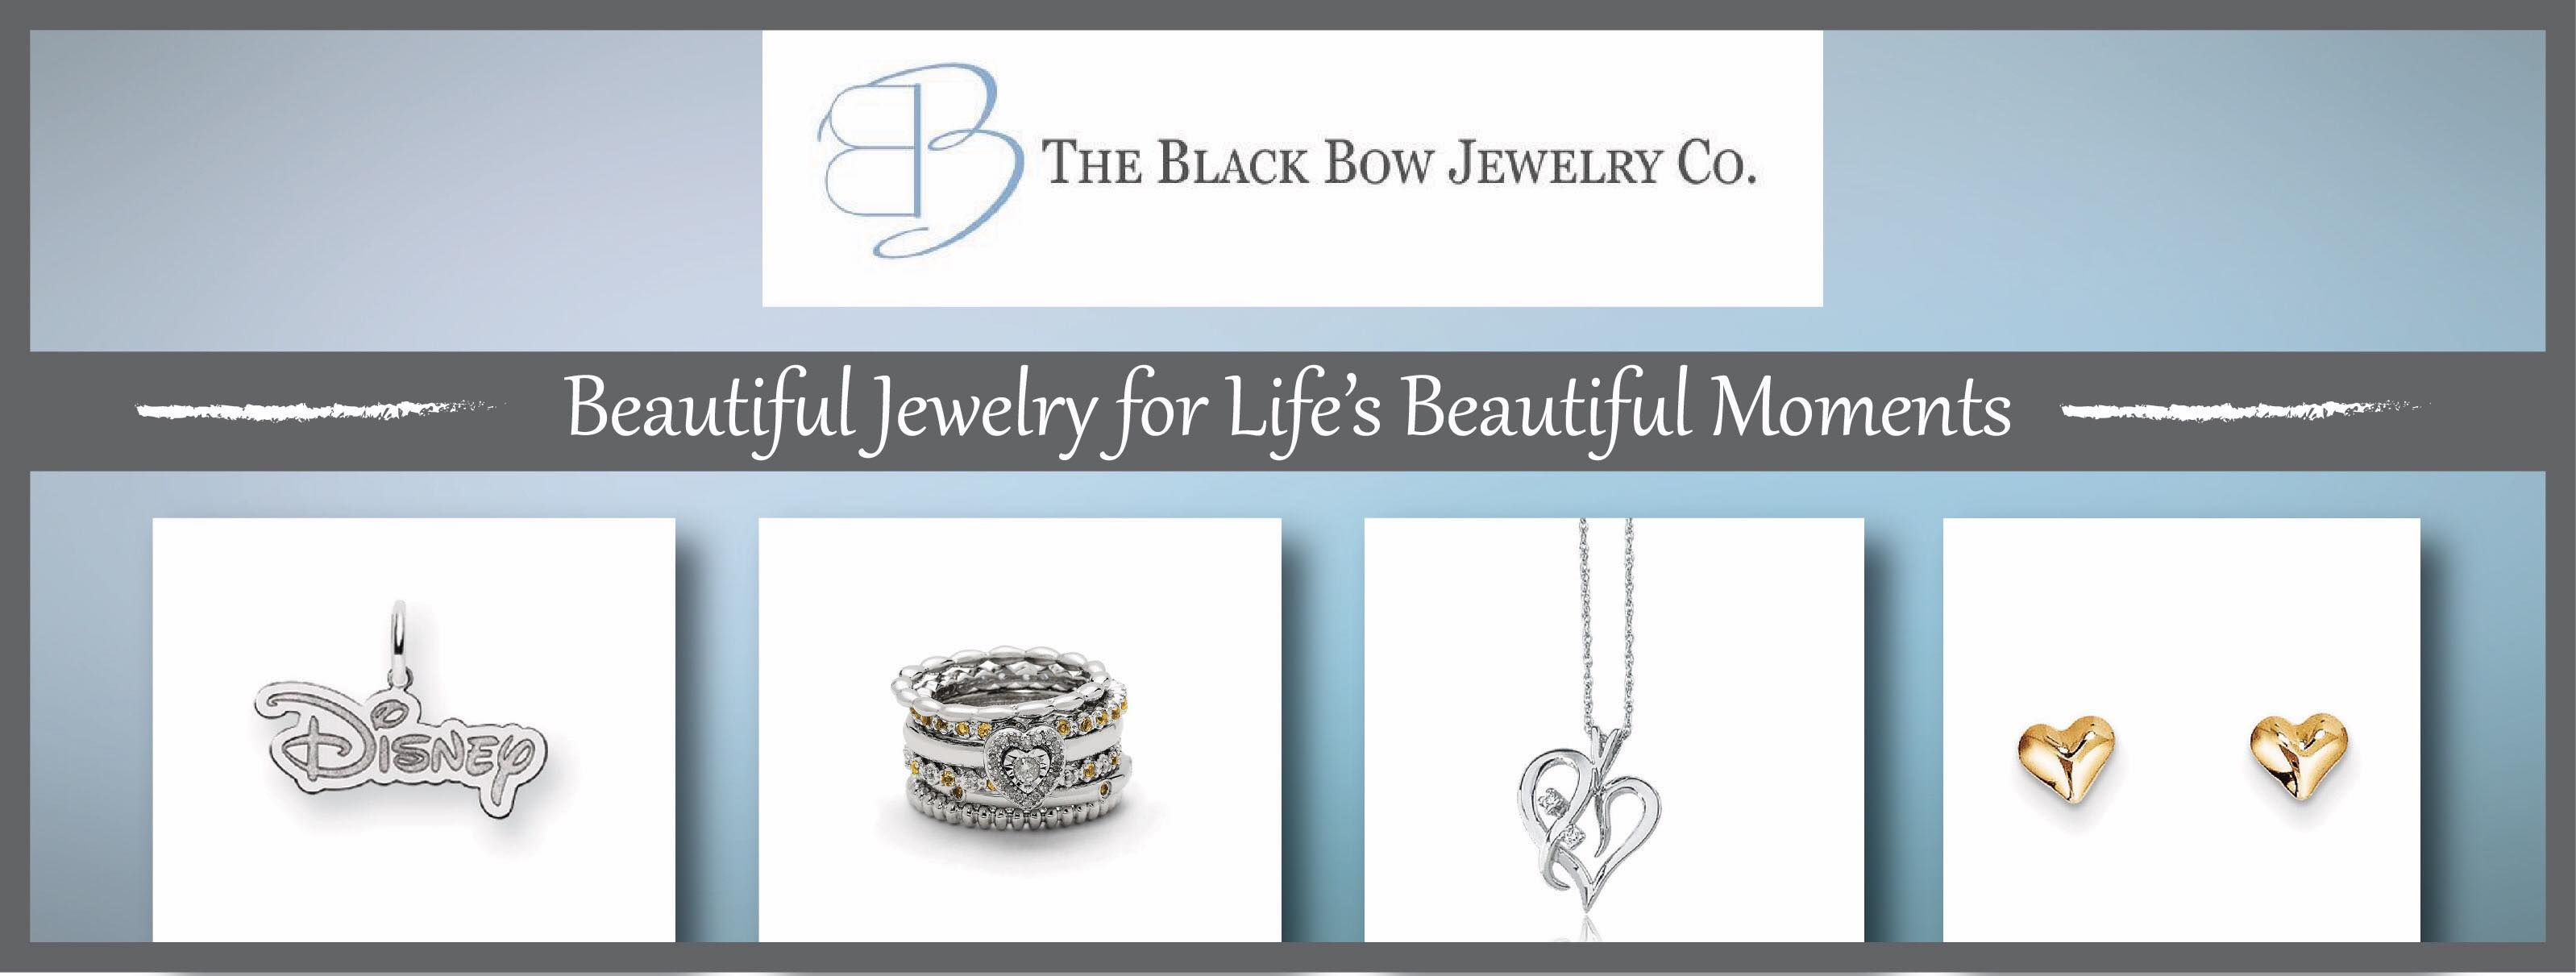 About Black Bow Jewelry Co. Homepage